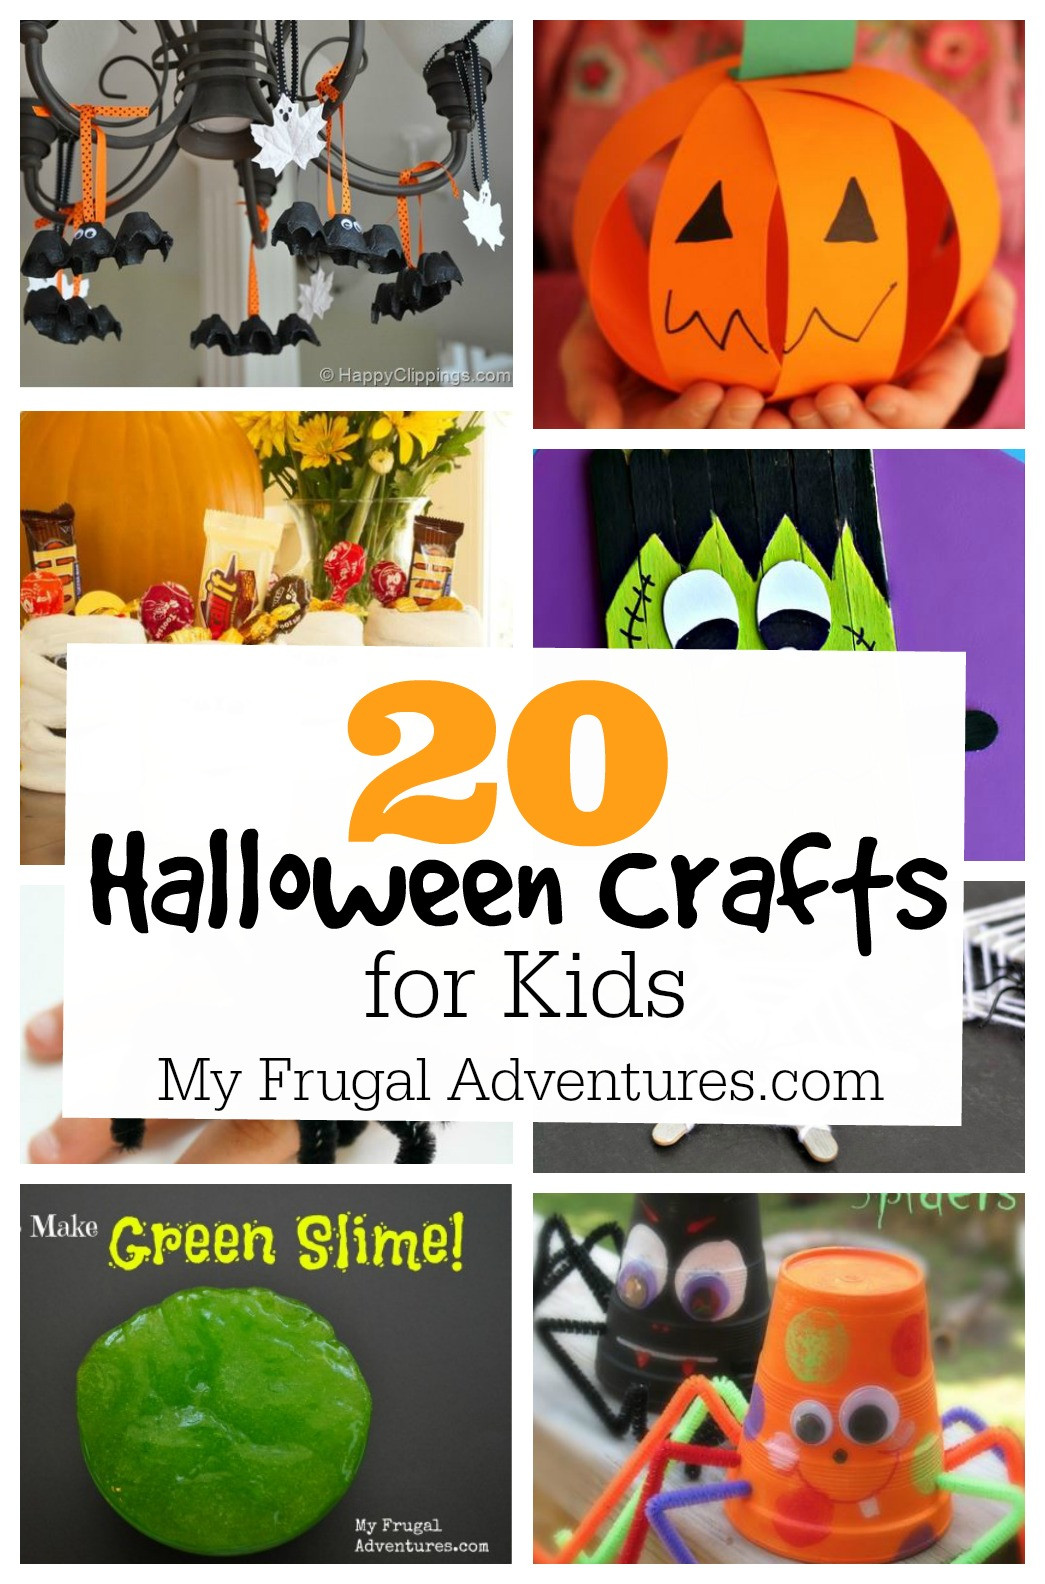 Best ideas about Halloween Craft Ideas For Kids . Save or Pin Halloween Candy Deals Roundup My Frugal Adventures Now.